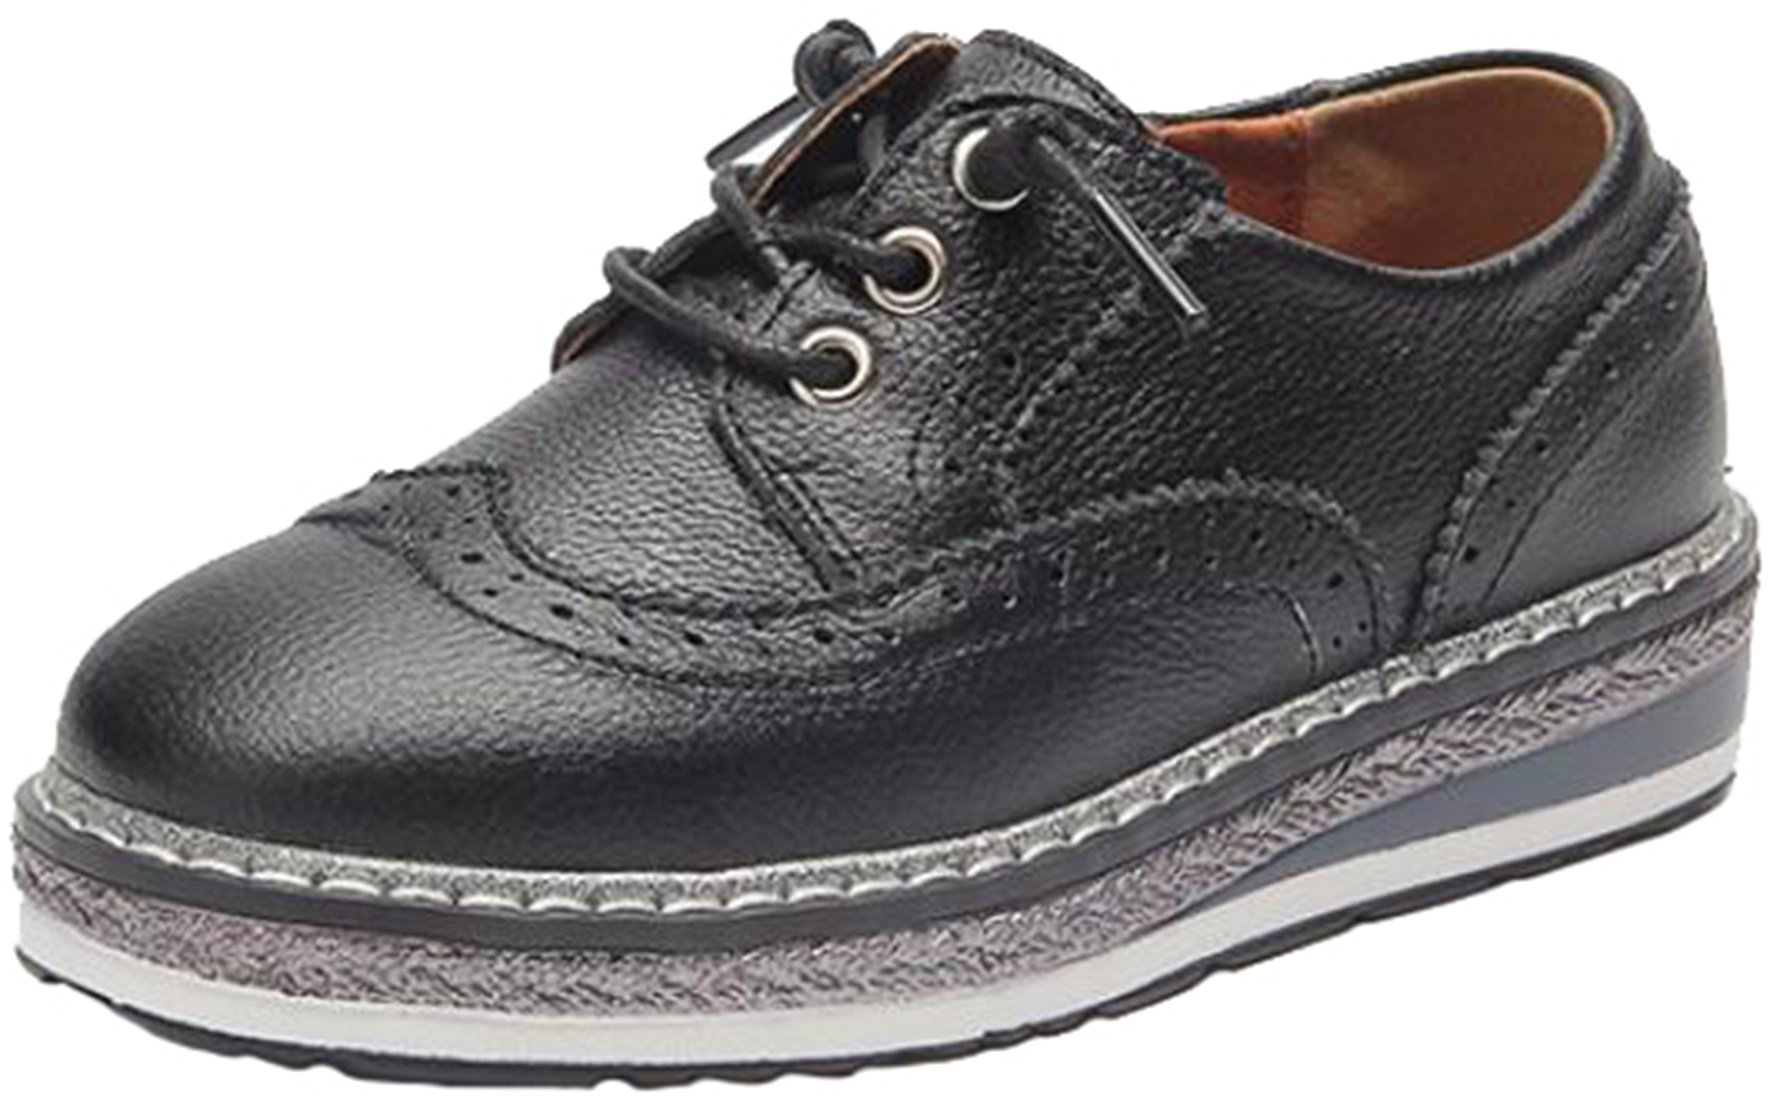 PPXID Boy's Girl's Preppy Style Lace up Leather Platform Brogue Carving Oxford Shoes-Black 4 US Size